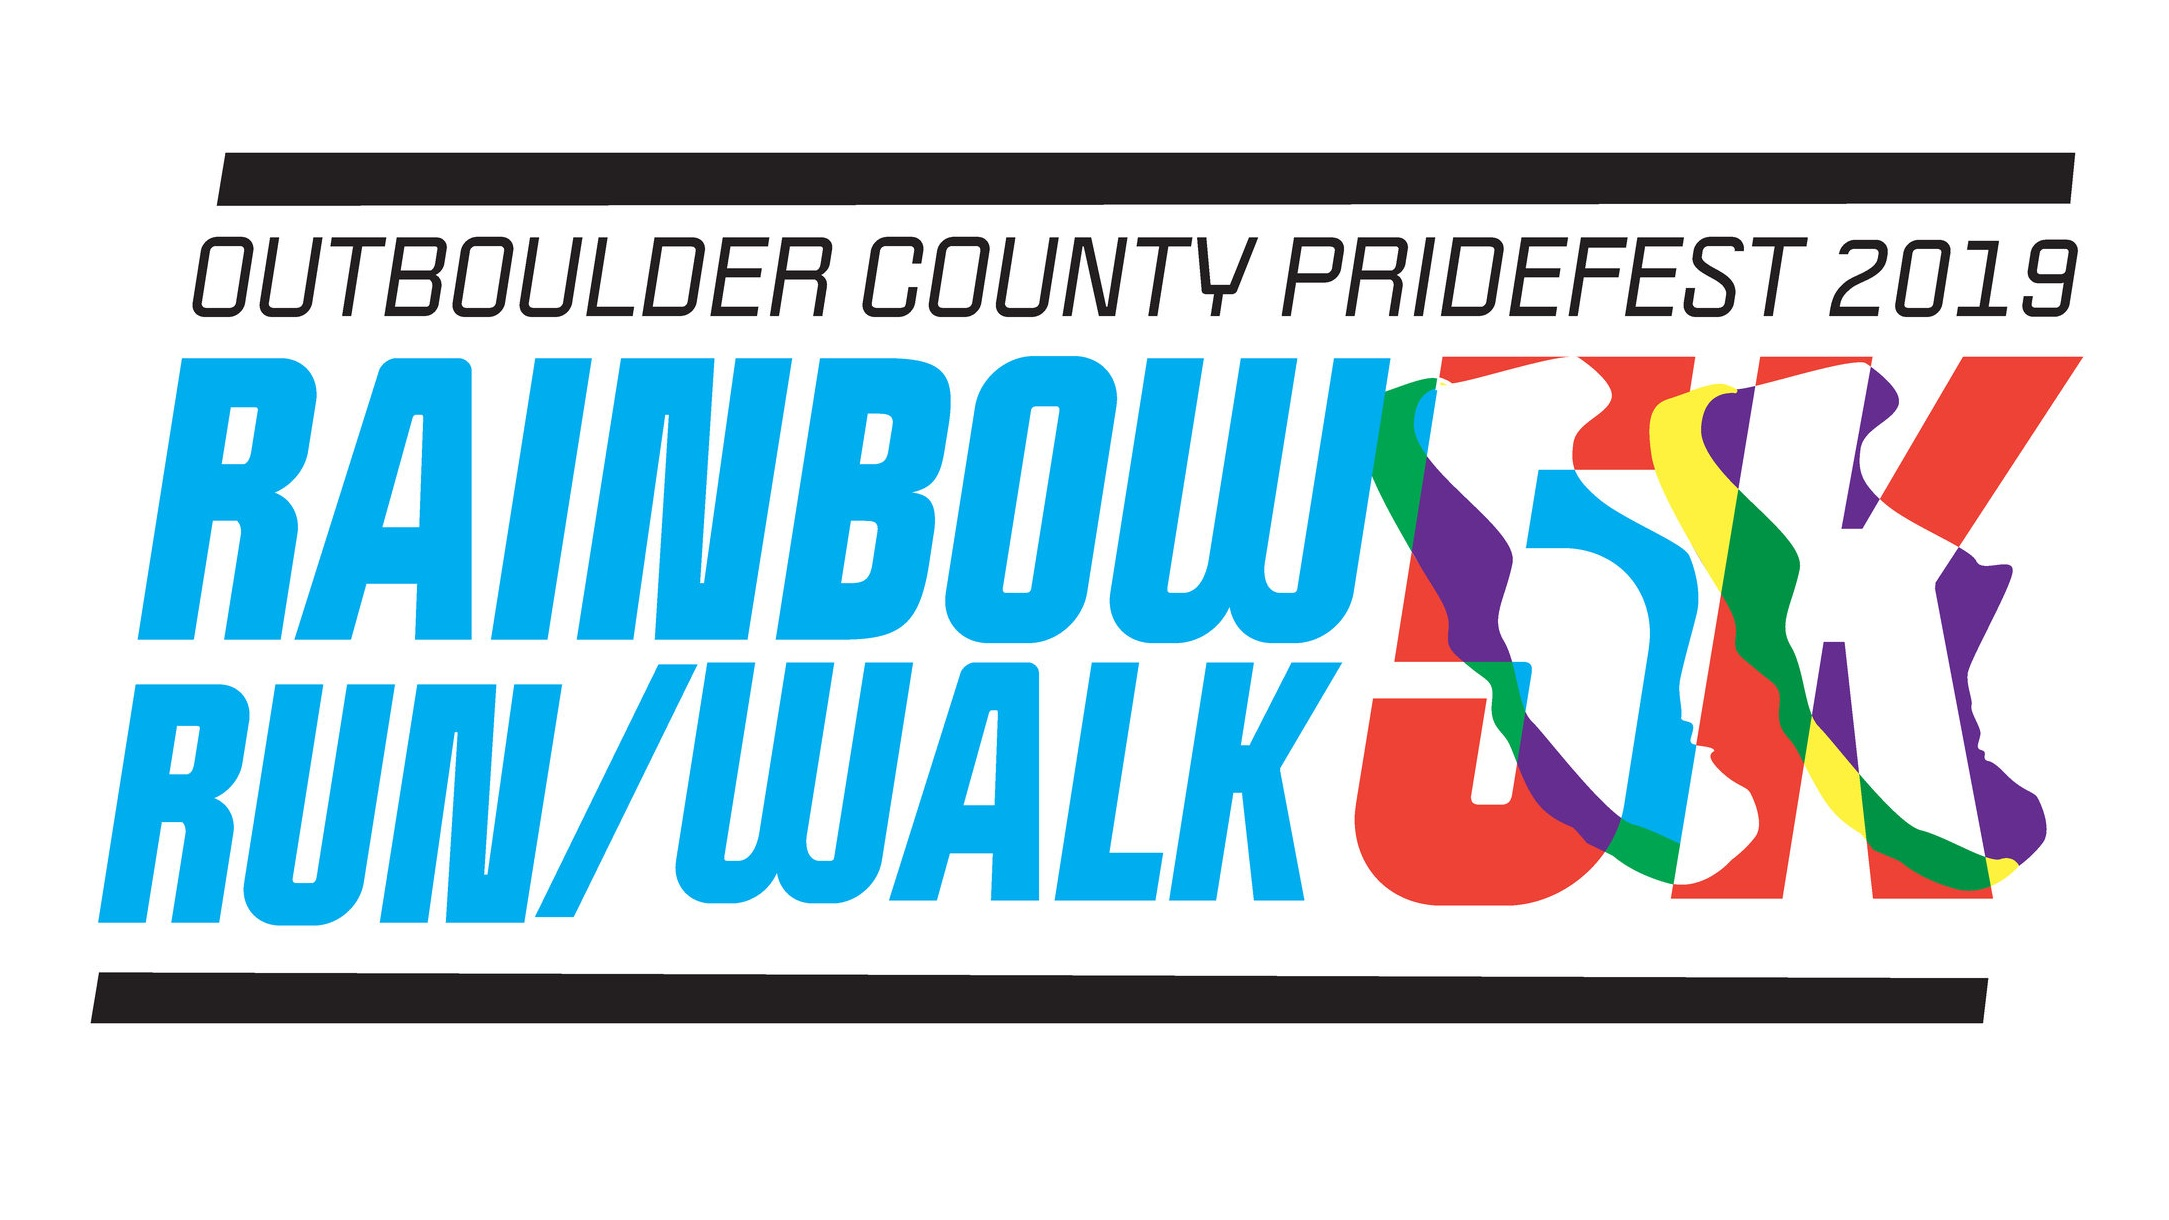 Rainbow Run/Walk 5K  Sunday, September 8th, 10:30-11:30 am Pearl & 11th, Boulder   Click here to register!     Register by  August 15th  and receive a free special edition Rainbow Run/Walk Boulder Pridefest t-shirt!  Click here to see this this event on our website.   Click here to see this event on Facebook.